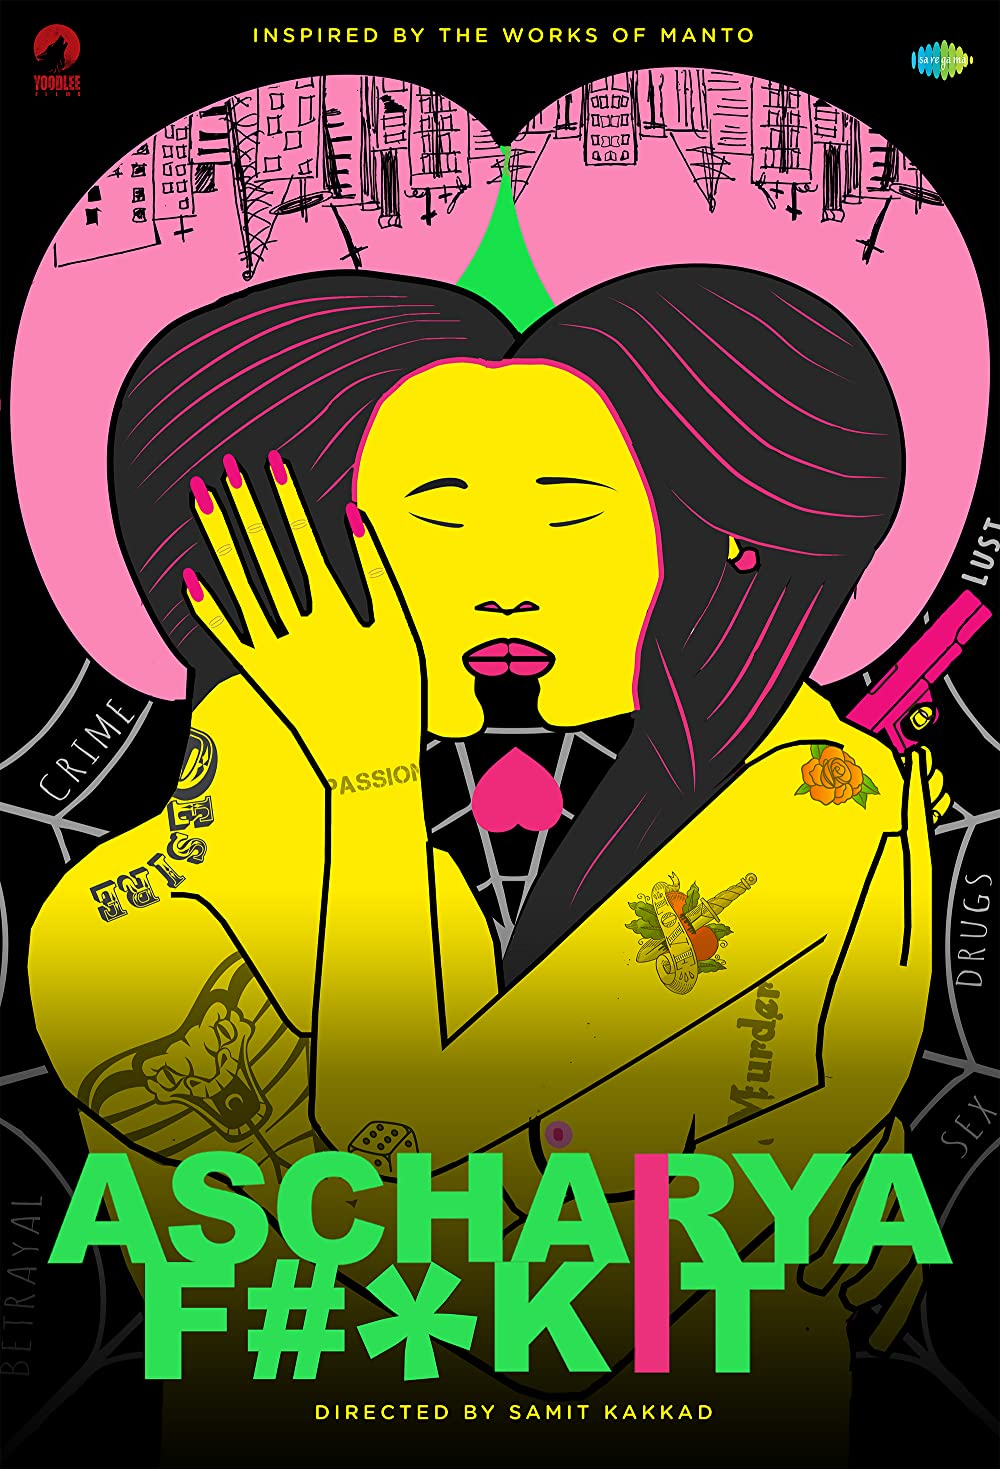 18+ Ascharya Fk It 2018 Hindi 720p UNRATED HDRip ESubs 600MB Download